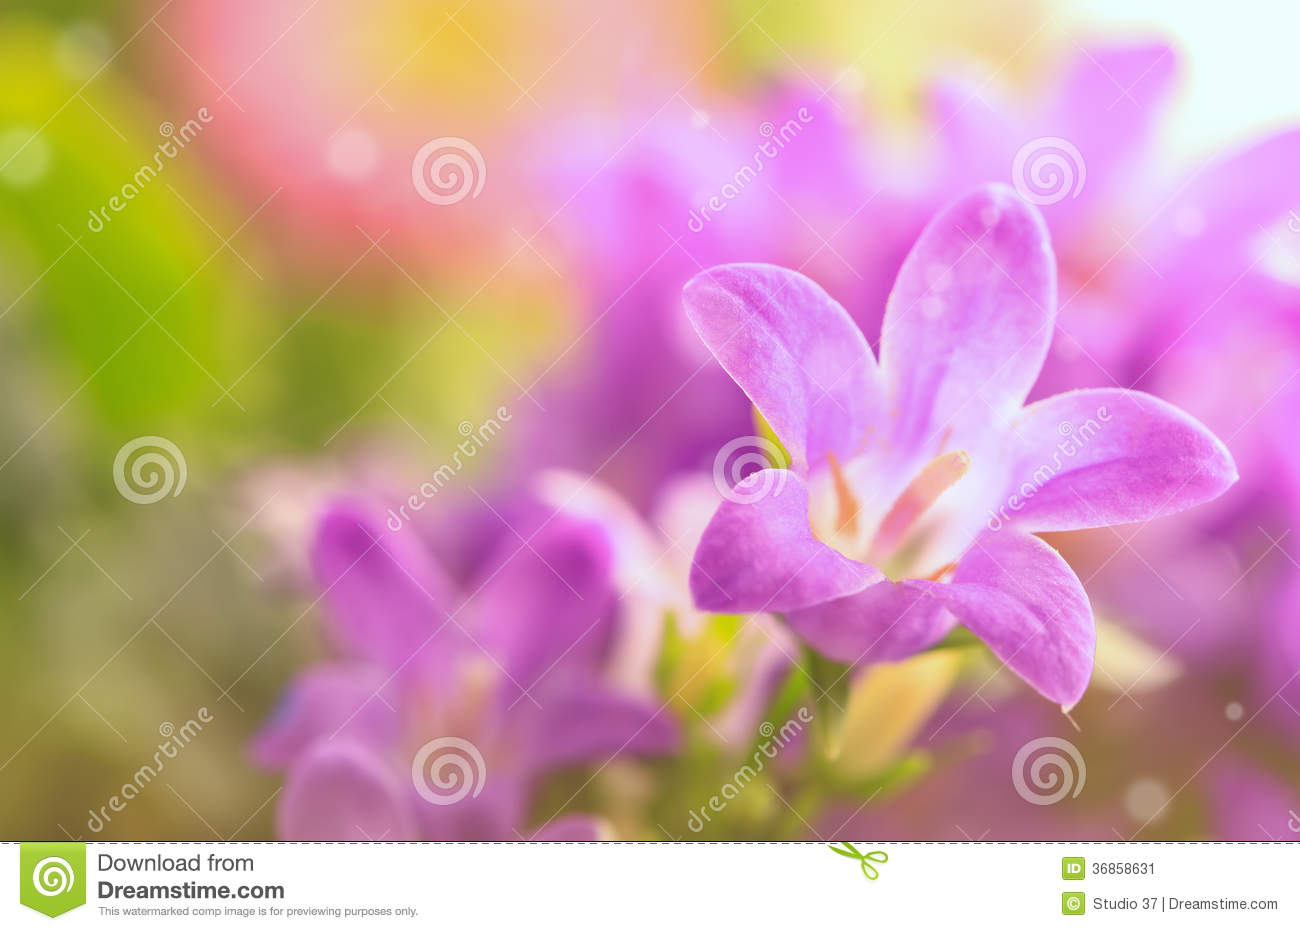 Flower Background Real Photographs Of Beautiful Flowers